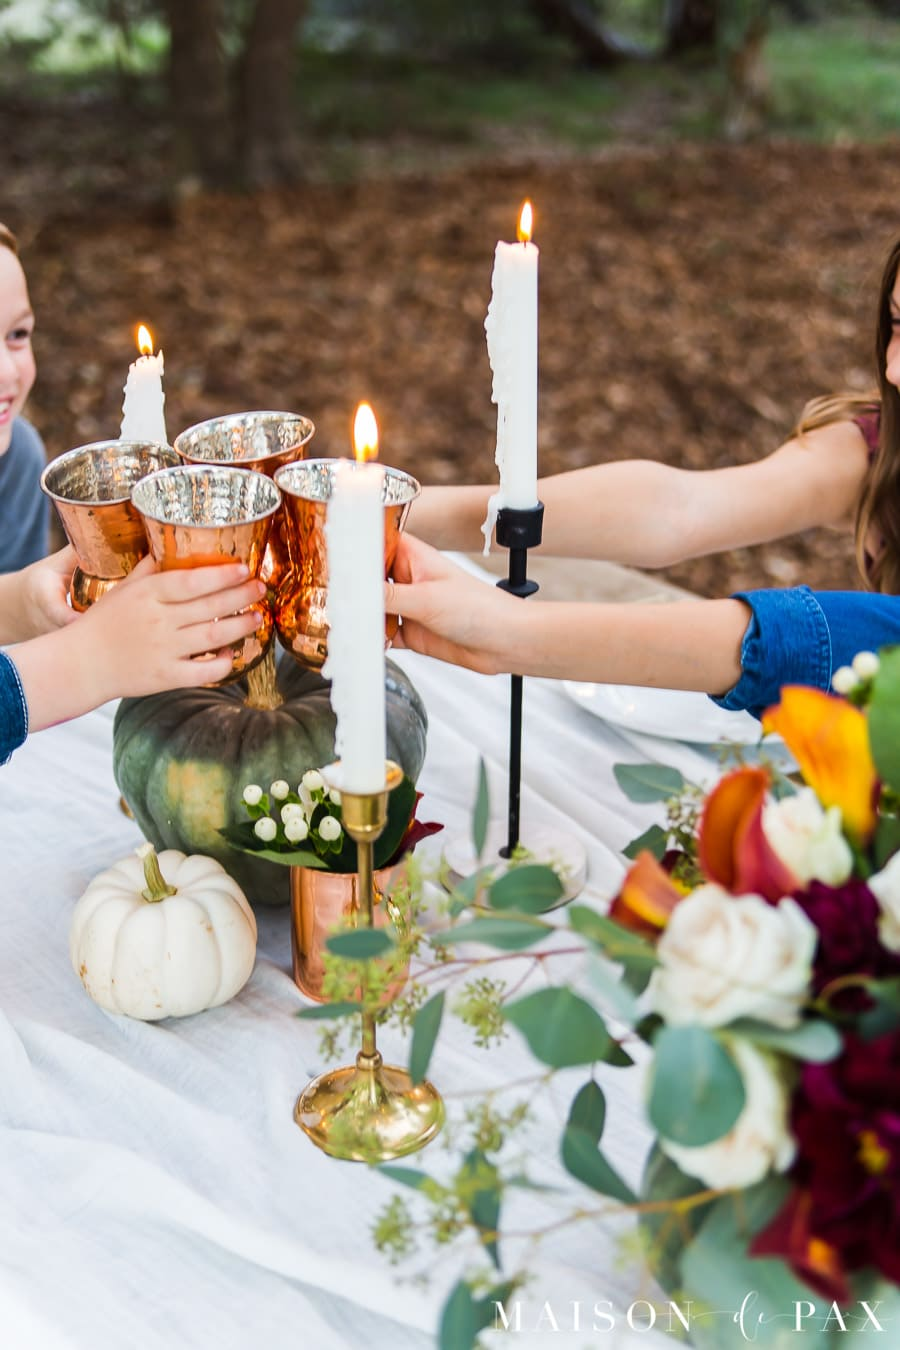 cheers with copper cups at Thanksgiving table | Maison de Pax